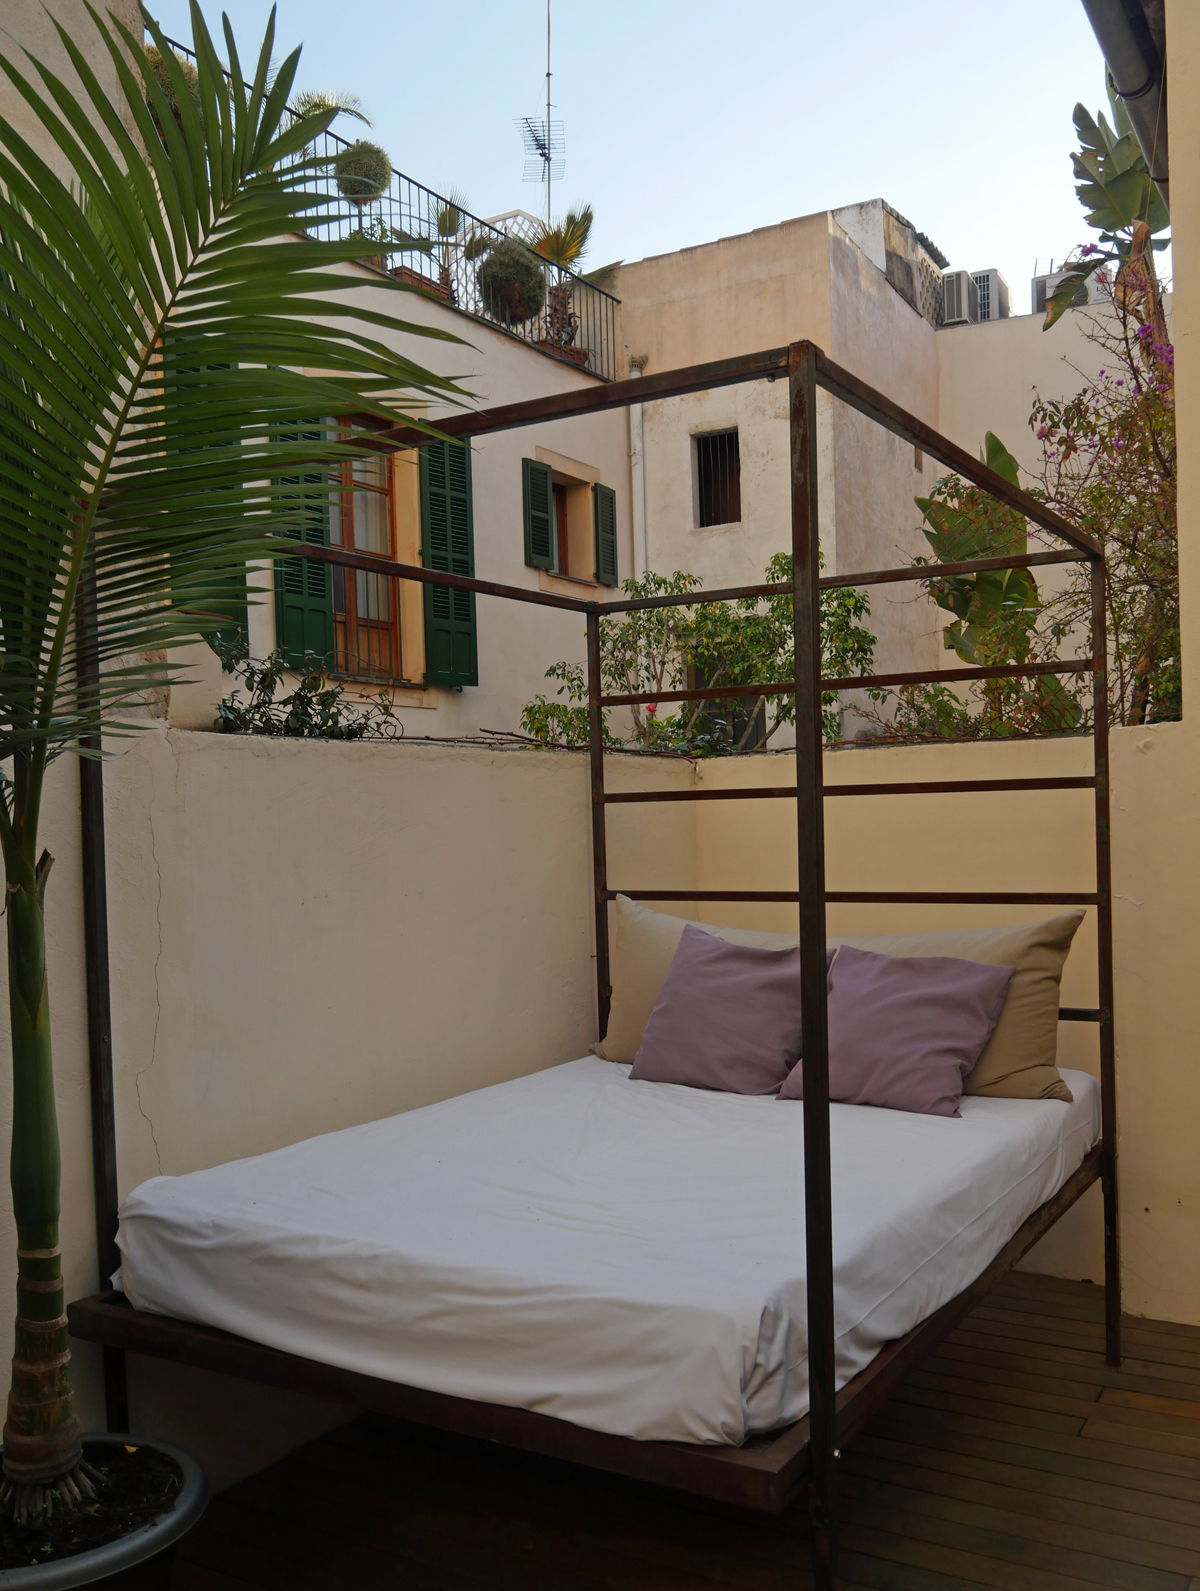 Daybed Hotel Architect Brondo Private Terrace